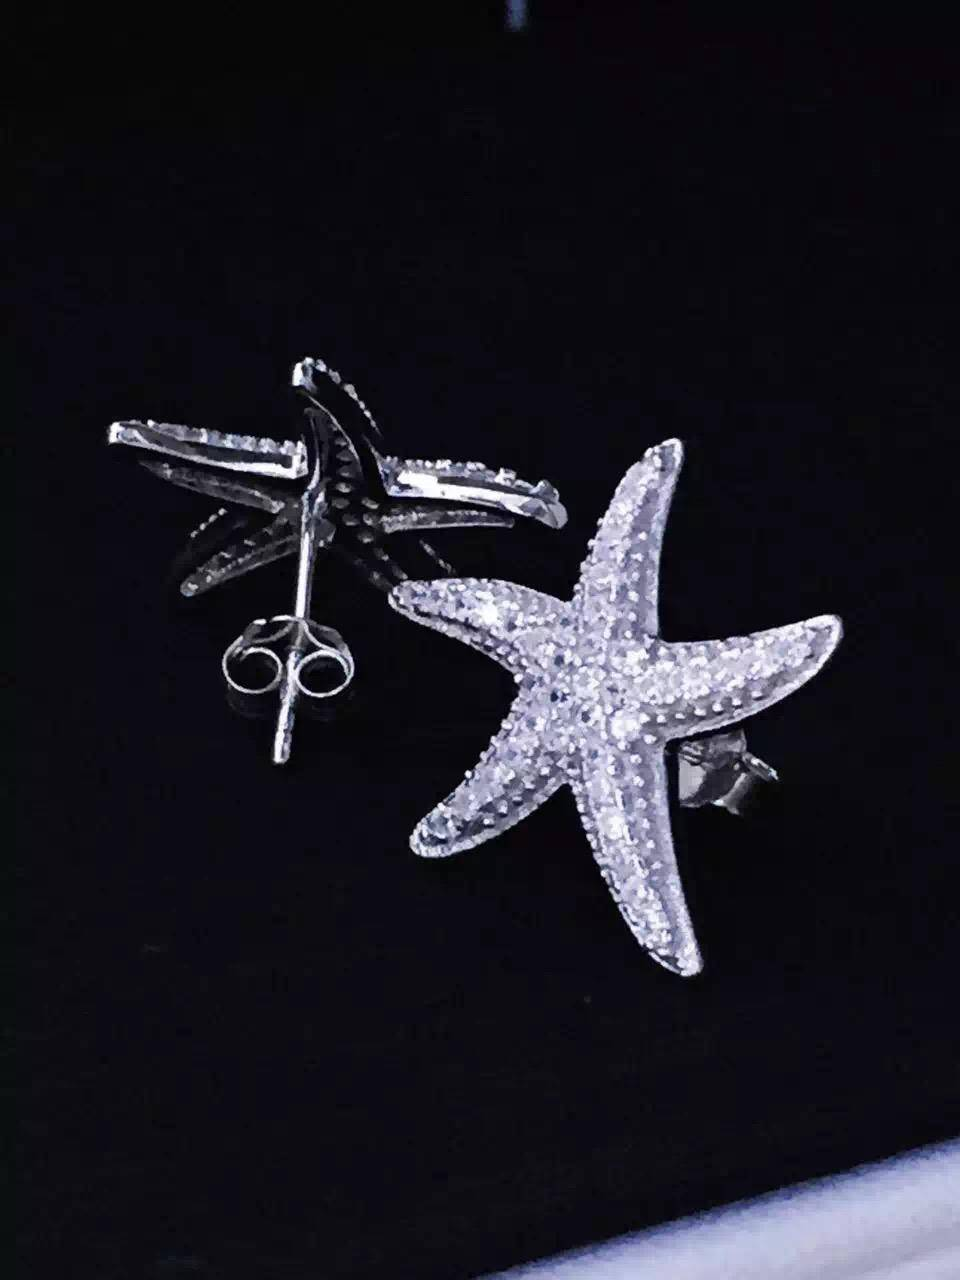 NEFFLY New Design 925 Sterling silver APMS Starfish stud earrings Fashion lady Jewelry beautiful wed